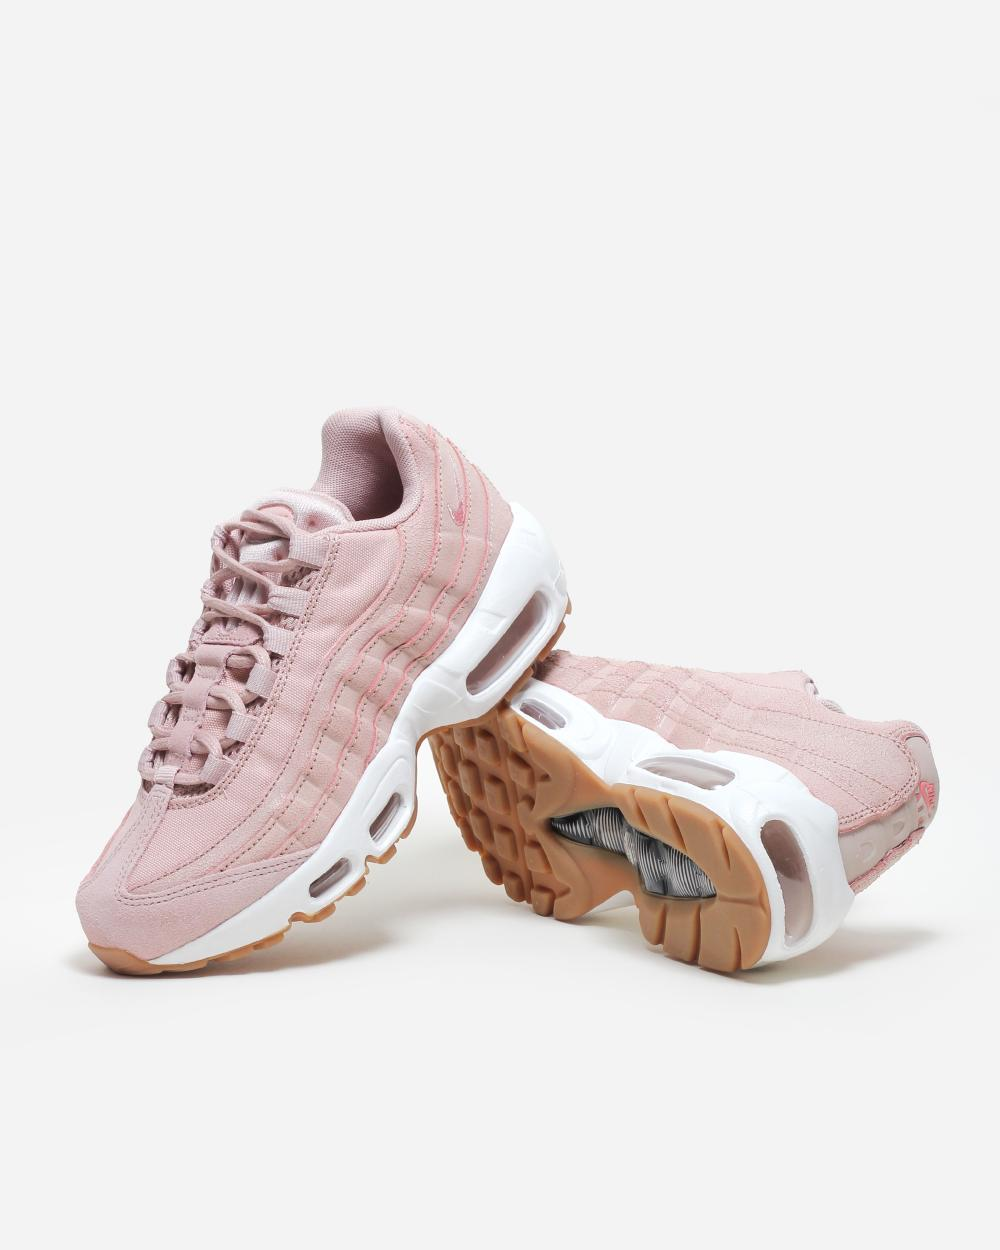 a4294caf28 ... good these premium air max 95s are cotton candy sweet bf9ff 7b163